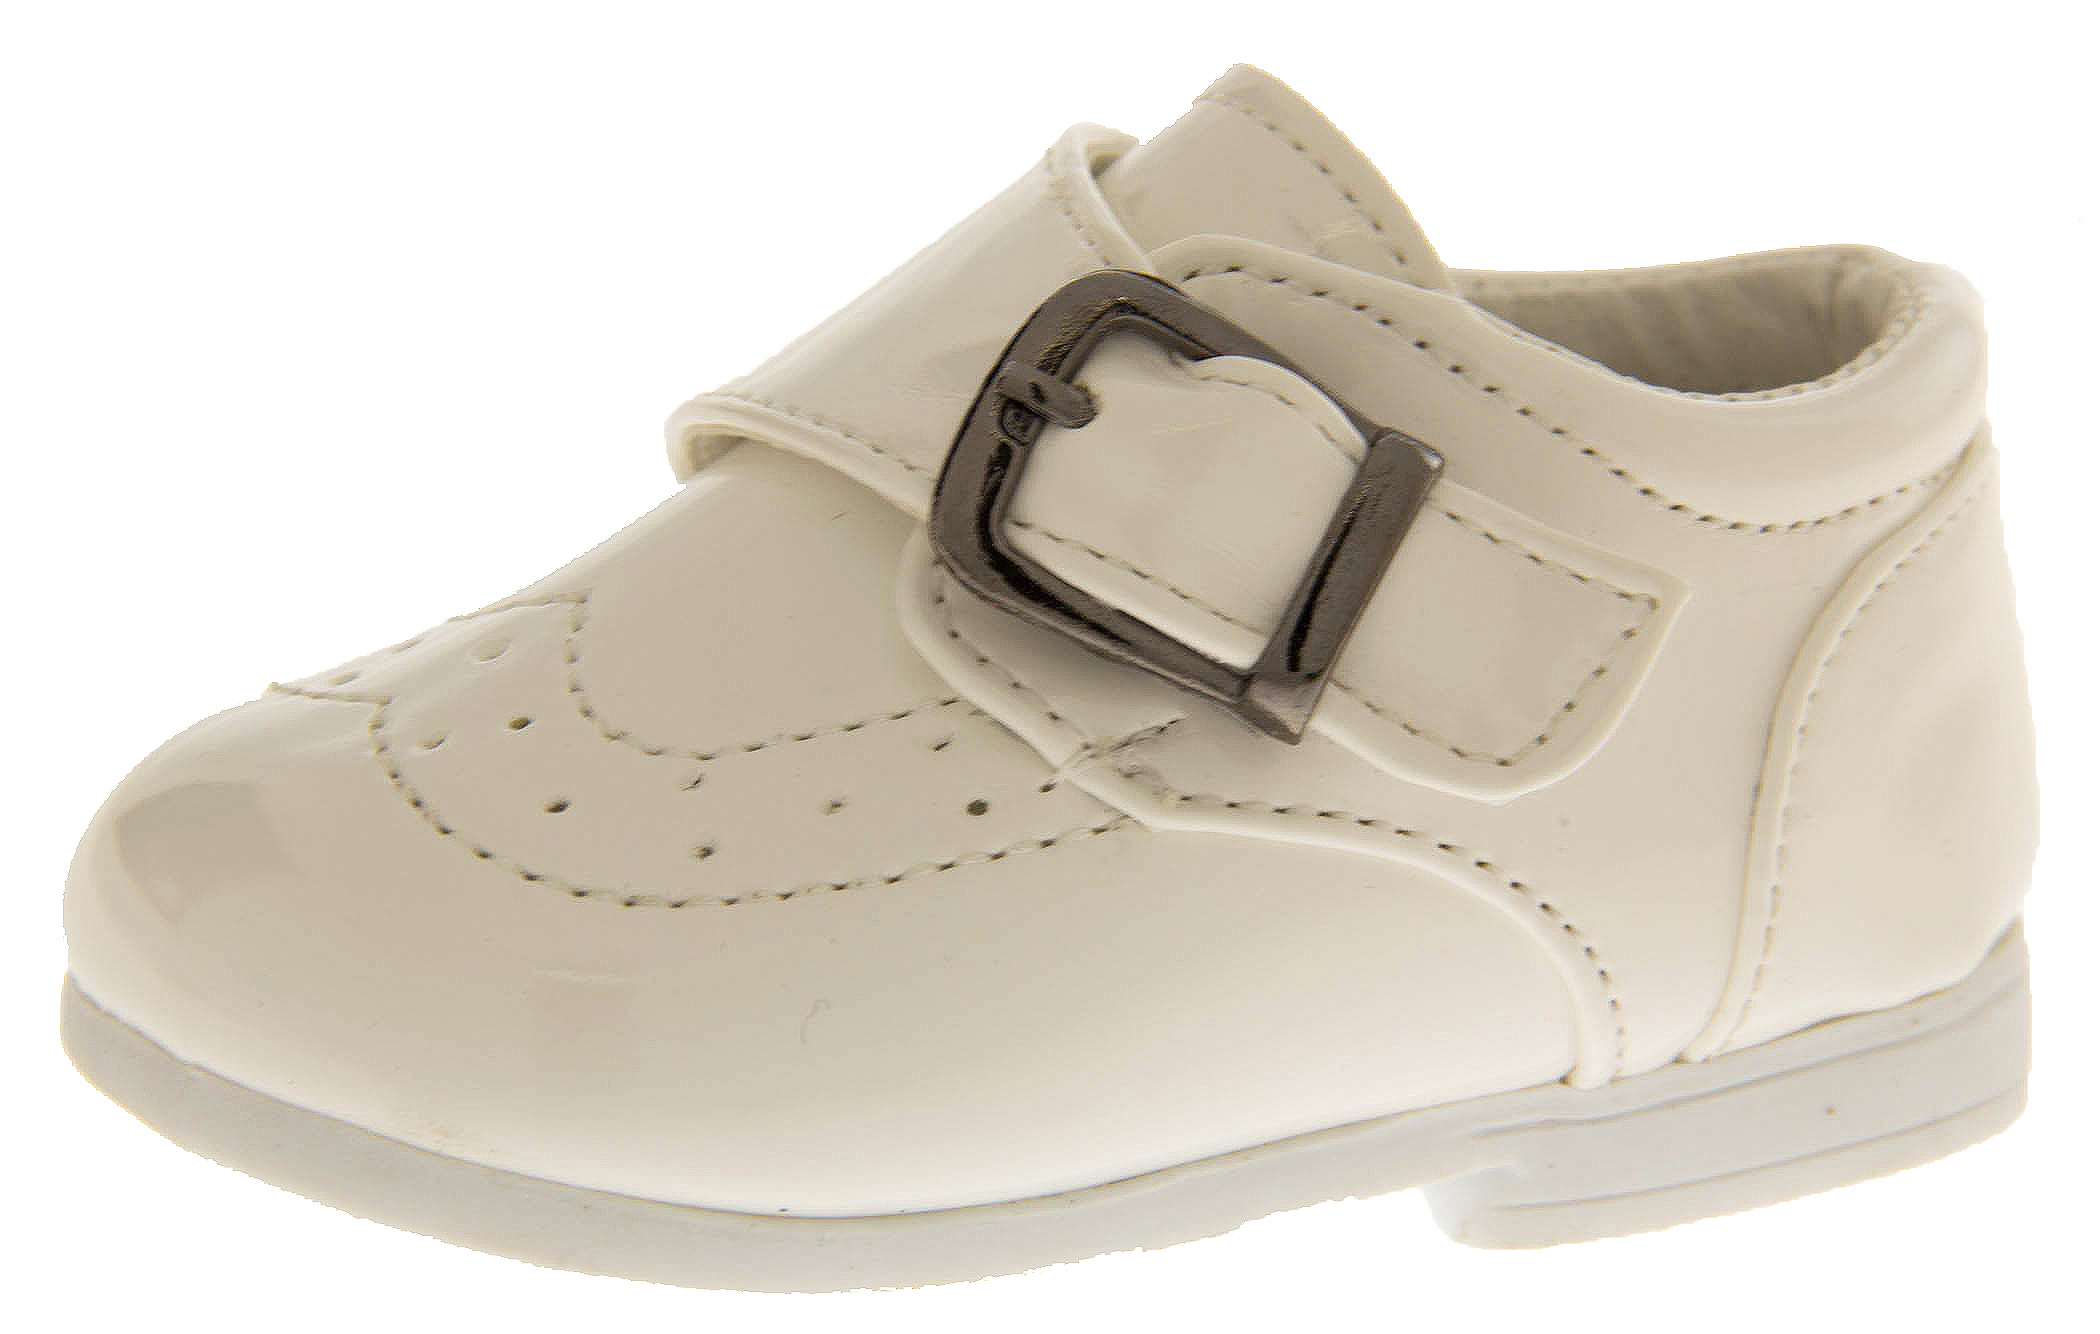 Find great deals on eBay for toddler boys white shoes. Shop with confidence.